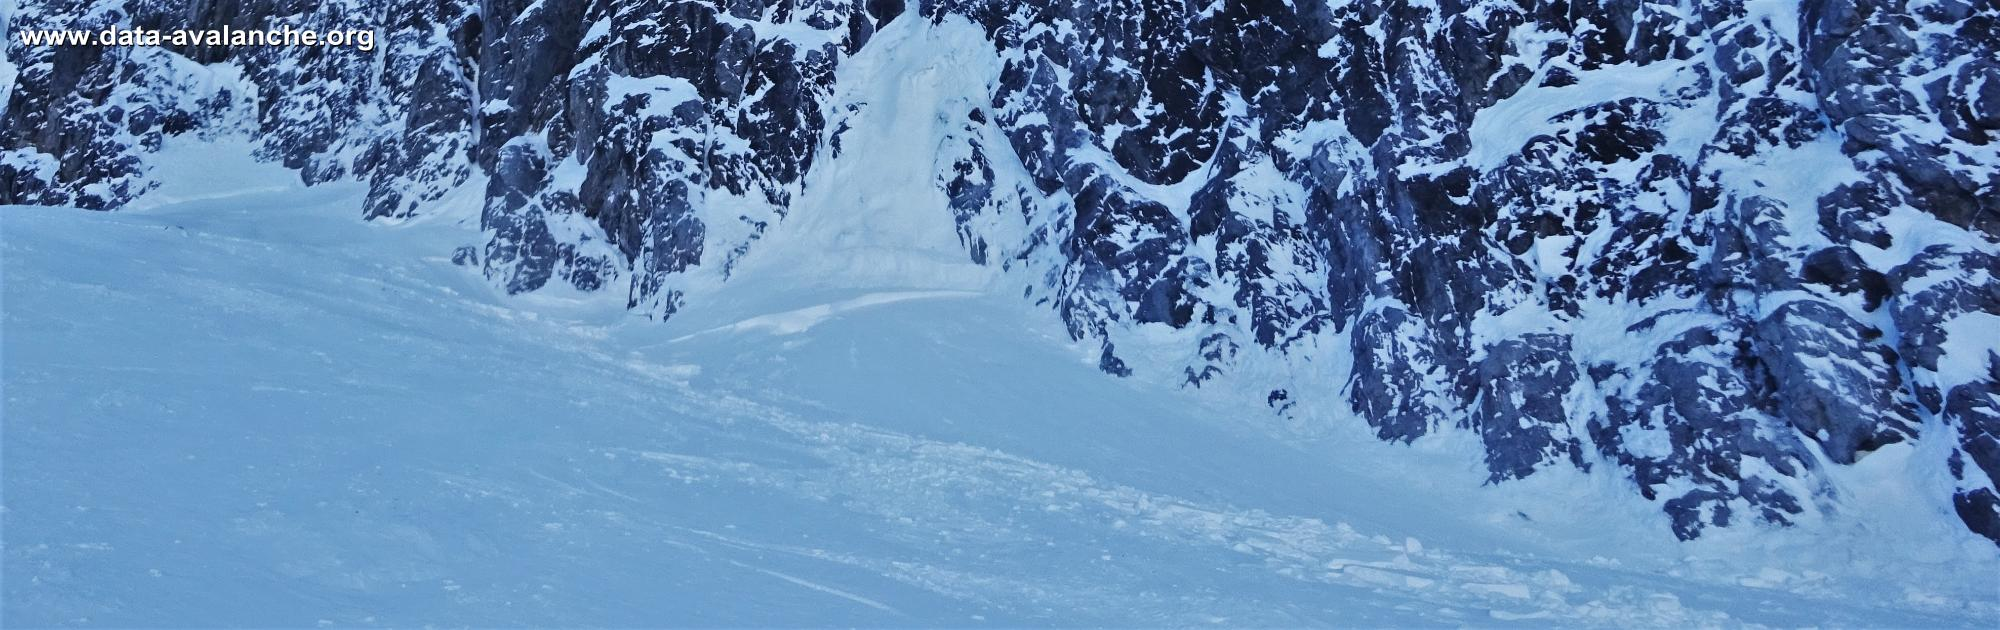 Avalanche Mont Thabor, secteur Grand Argentier, Pied de la face Ouest - Photo 1